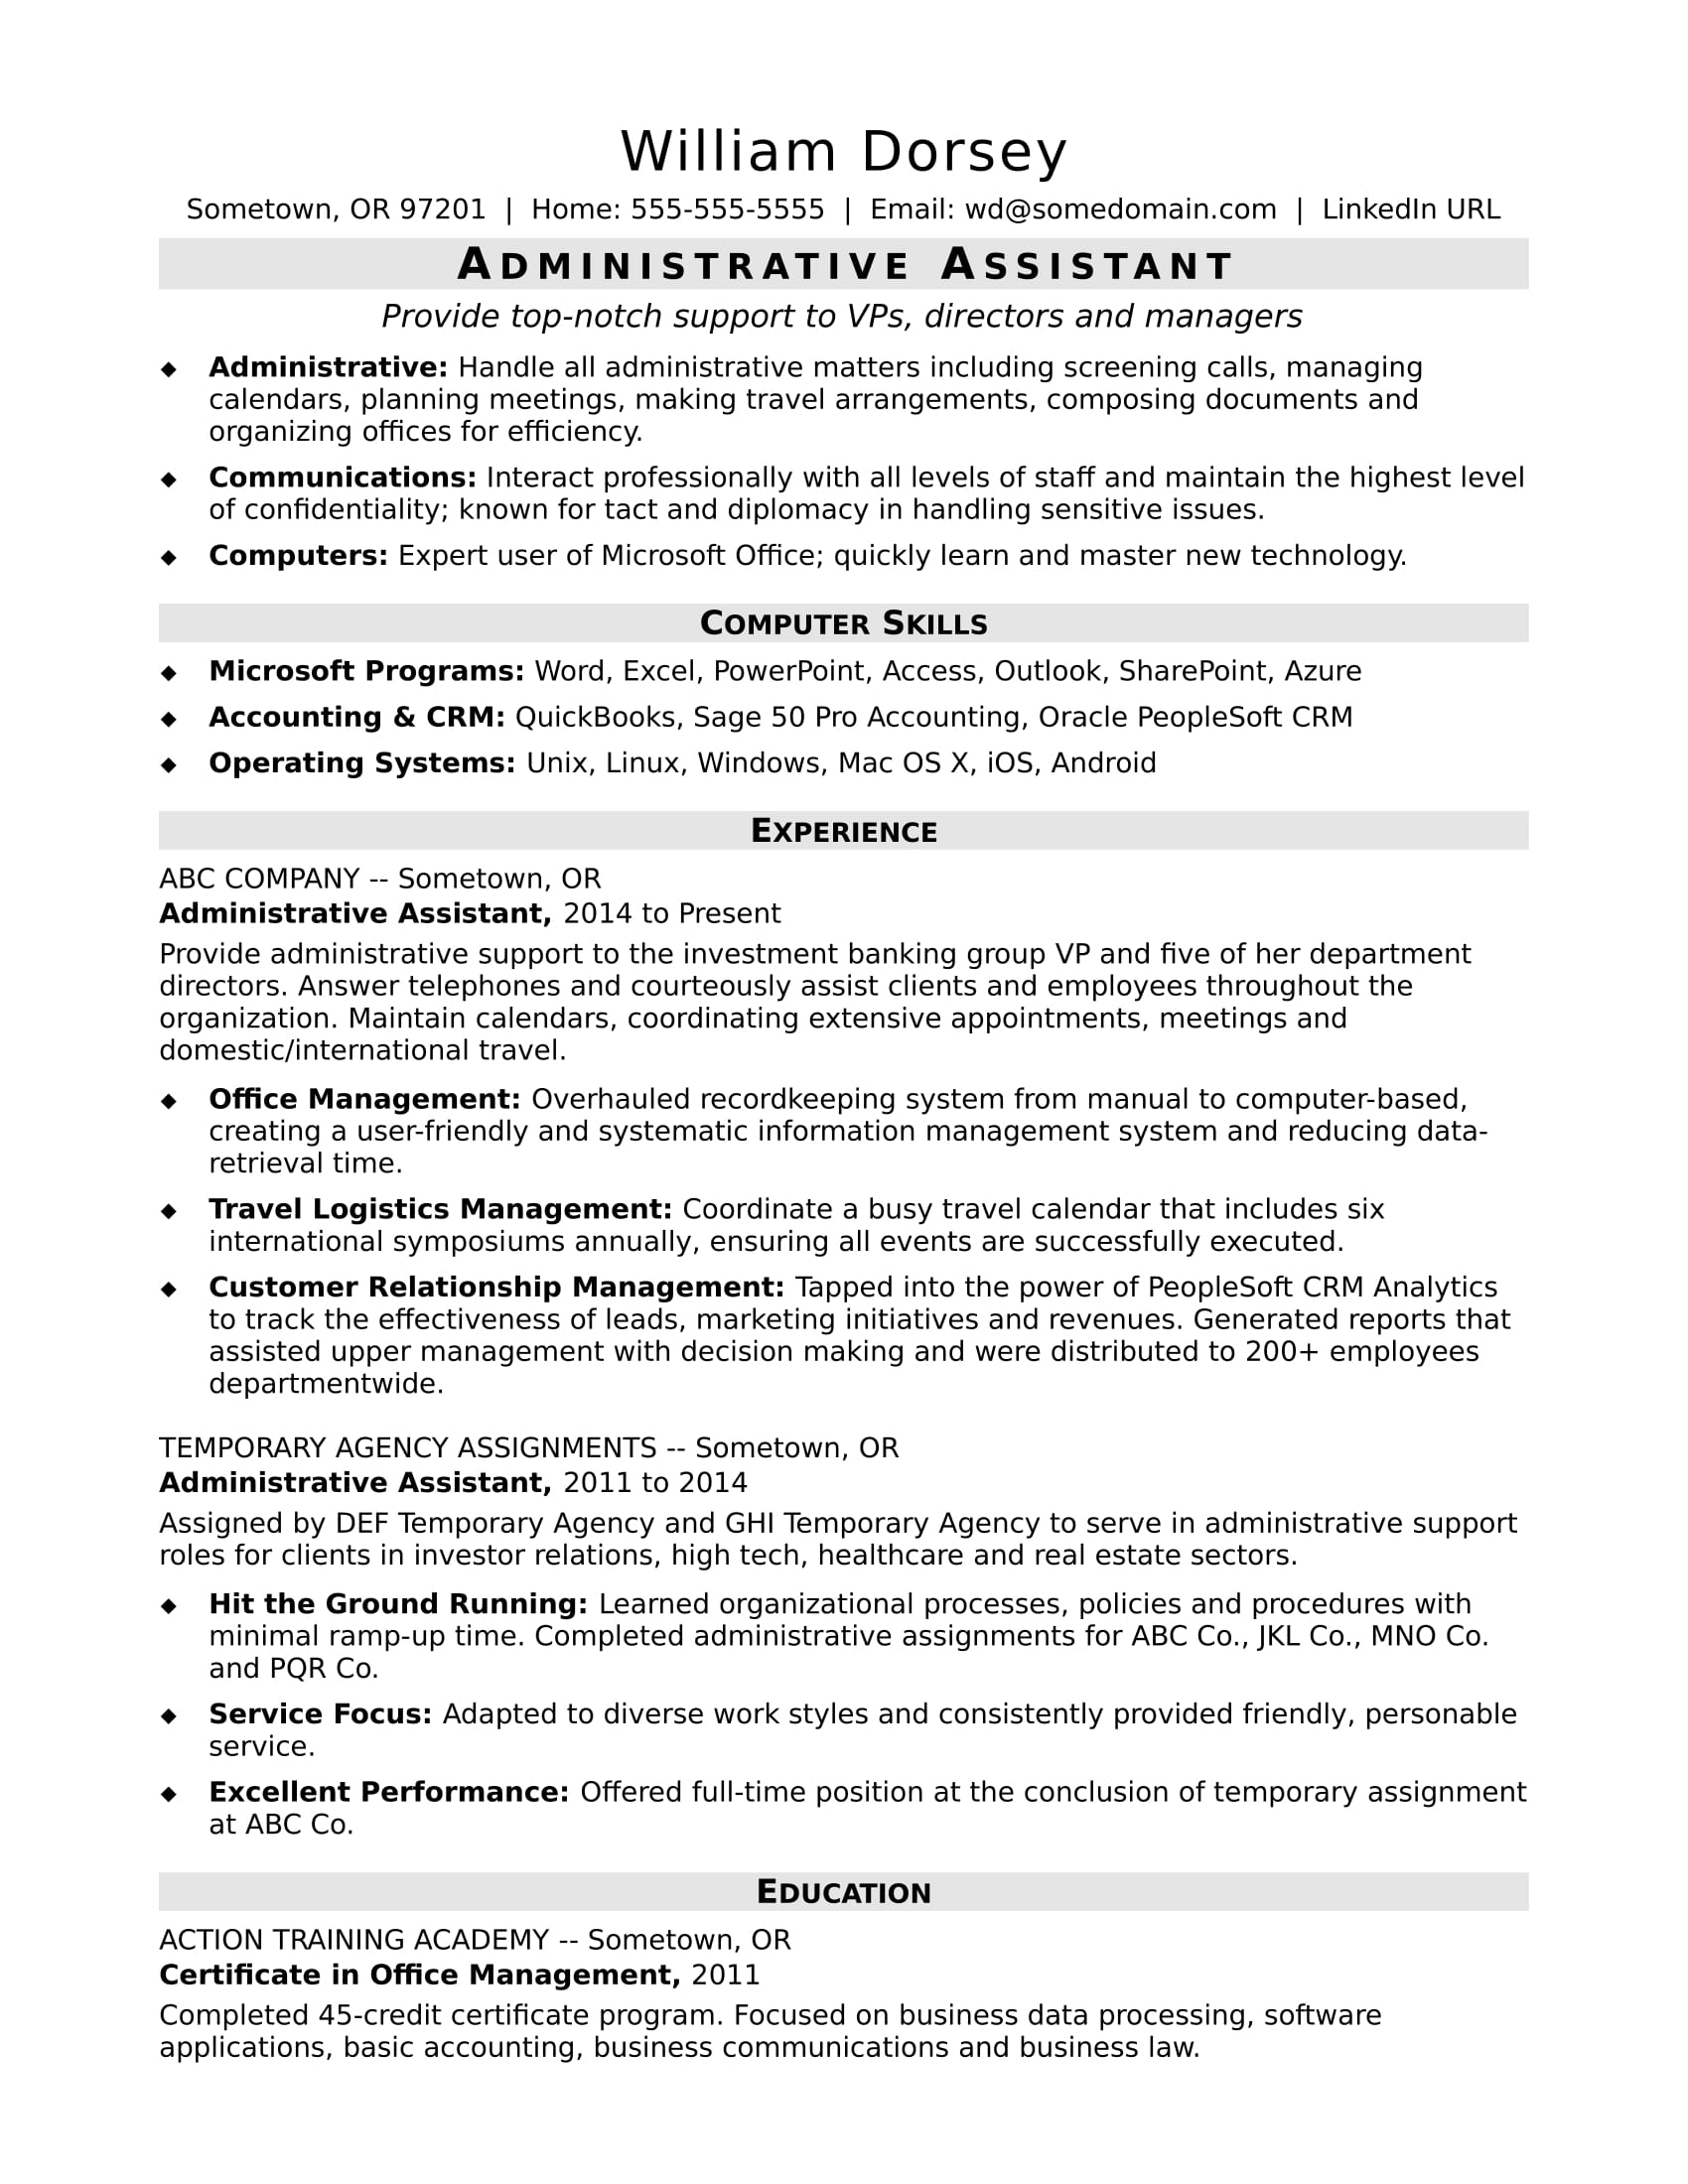 sample resume for a midlevel administrative assistant - Office Assistant Resume Templates